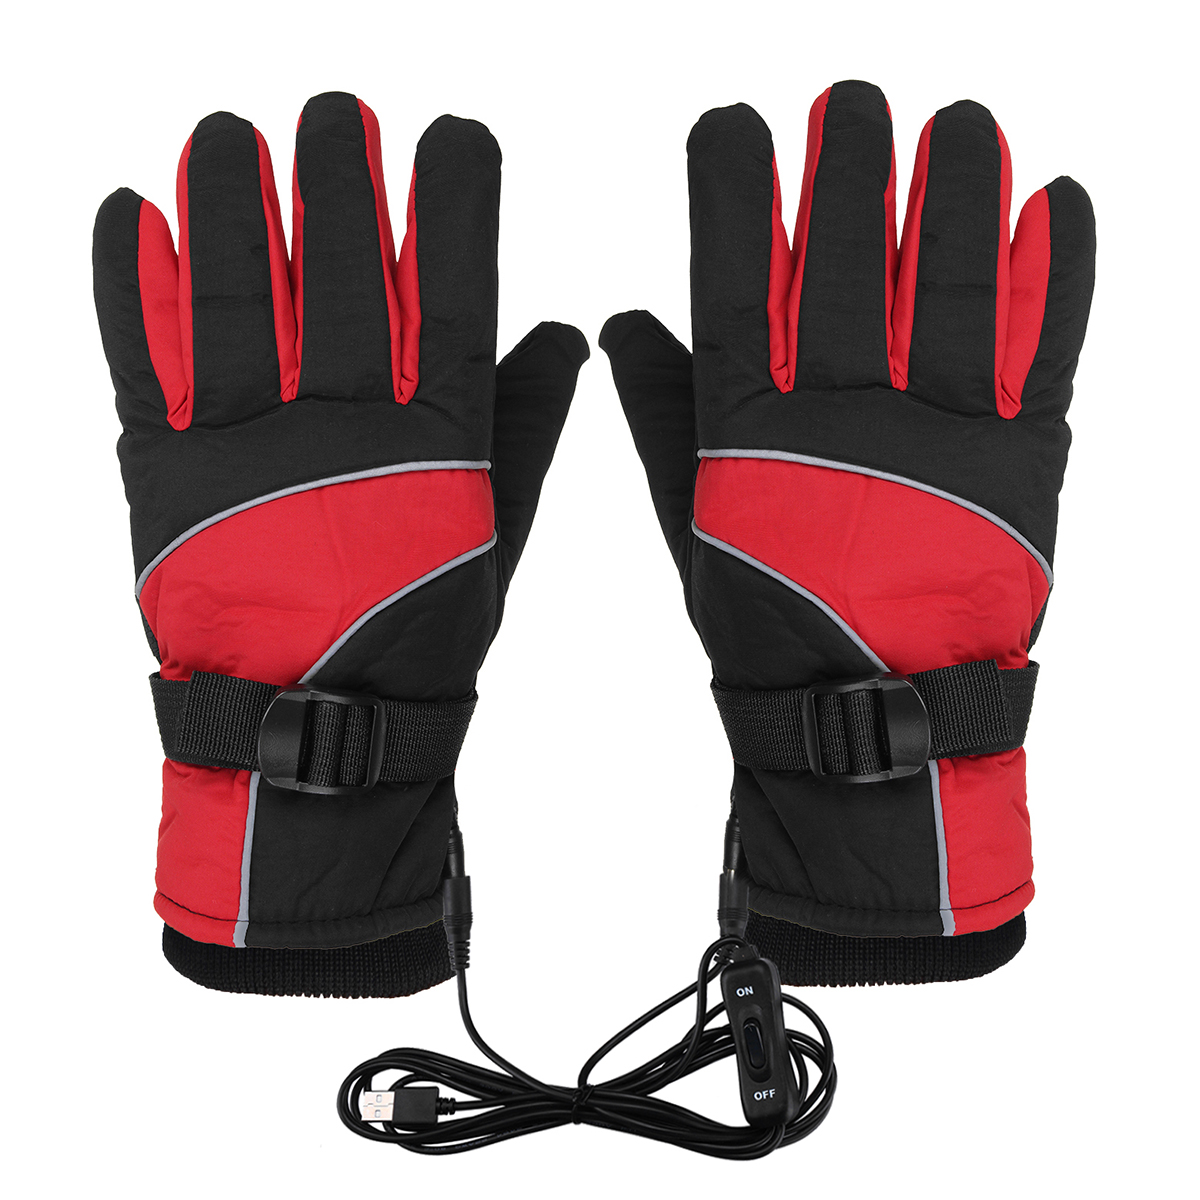 12V Winter Warm Electric Heated Gloves Touch Screen USB Charging Motorcycle Waterproof Gloves Skiing Windproof Gloves